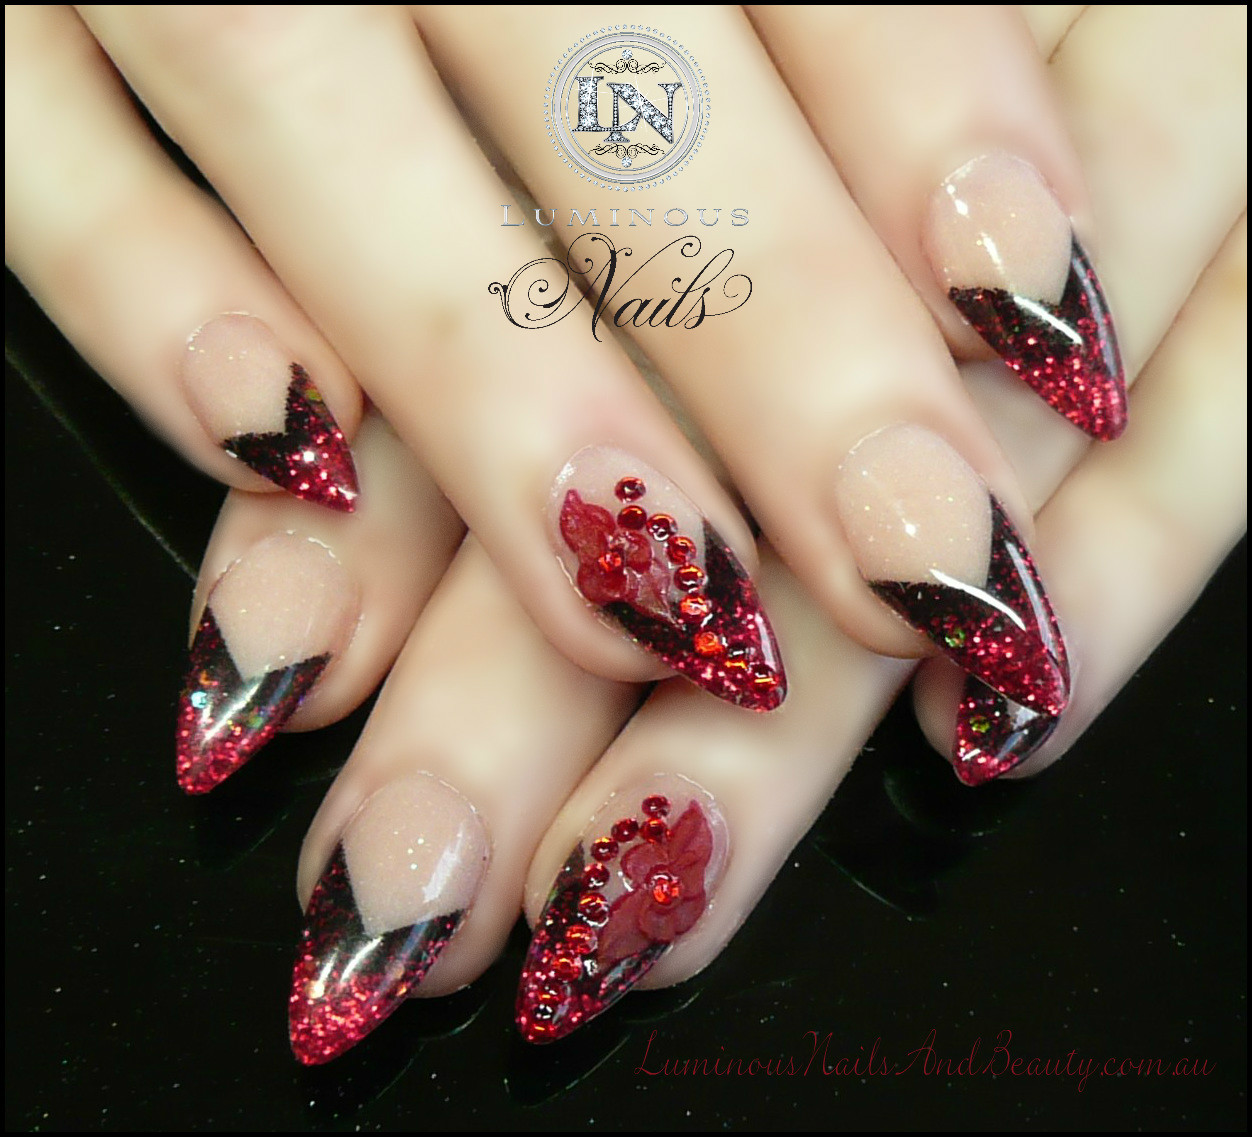 Red Stiletto Nail Design: Red stiletto nails nail designs art by ...